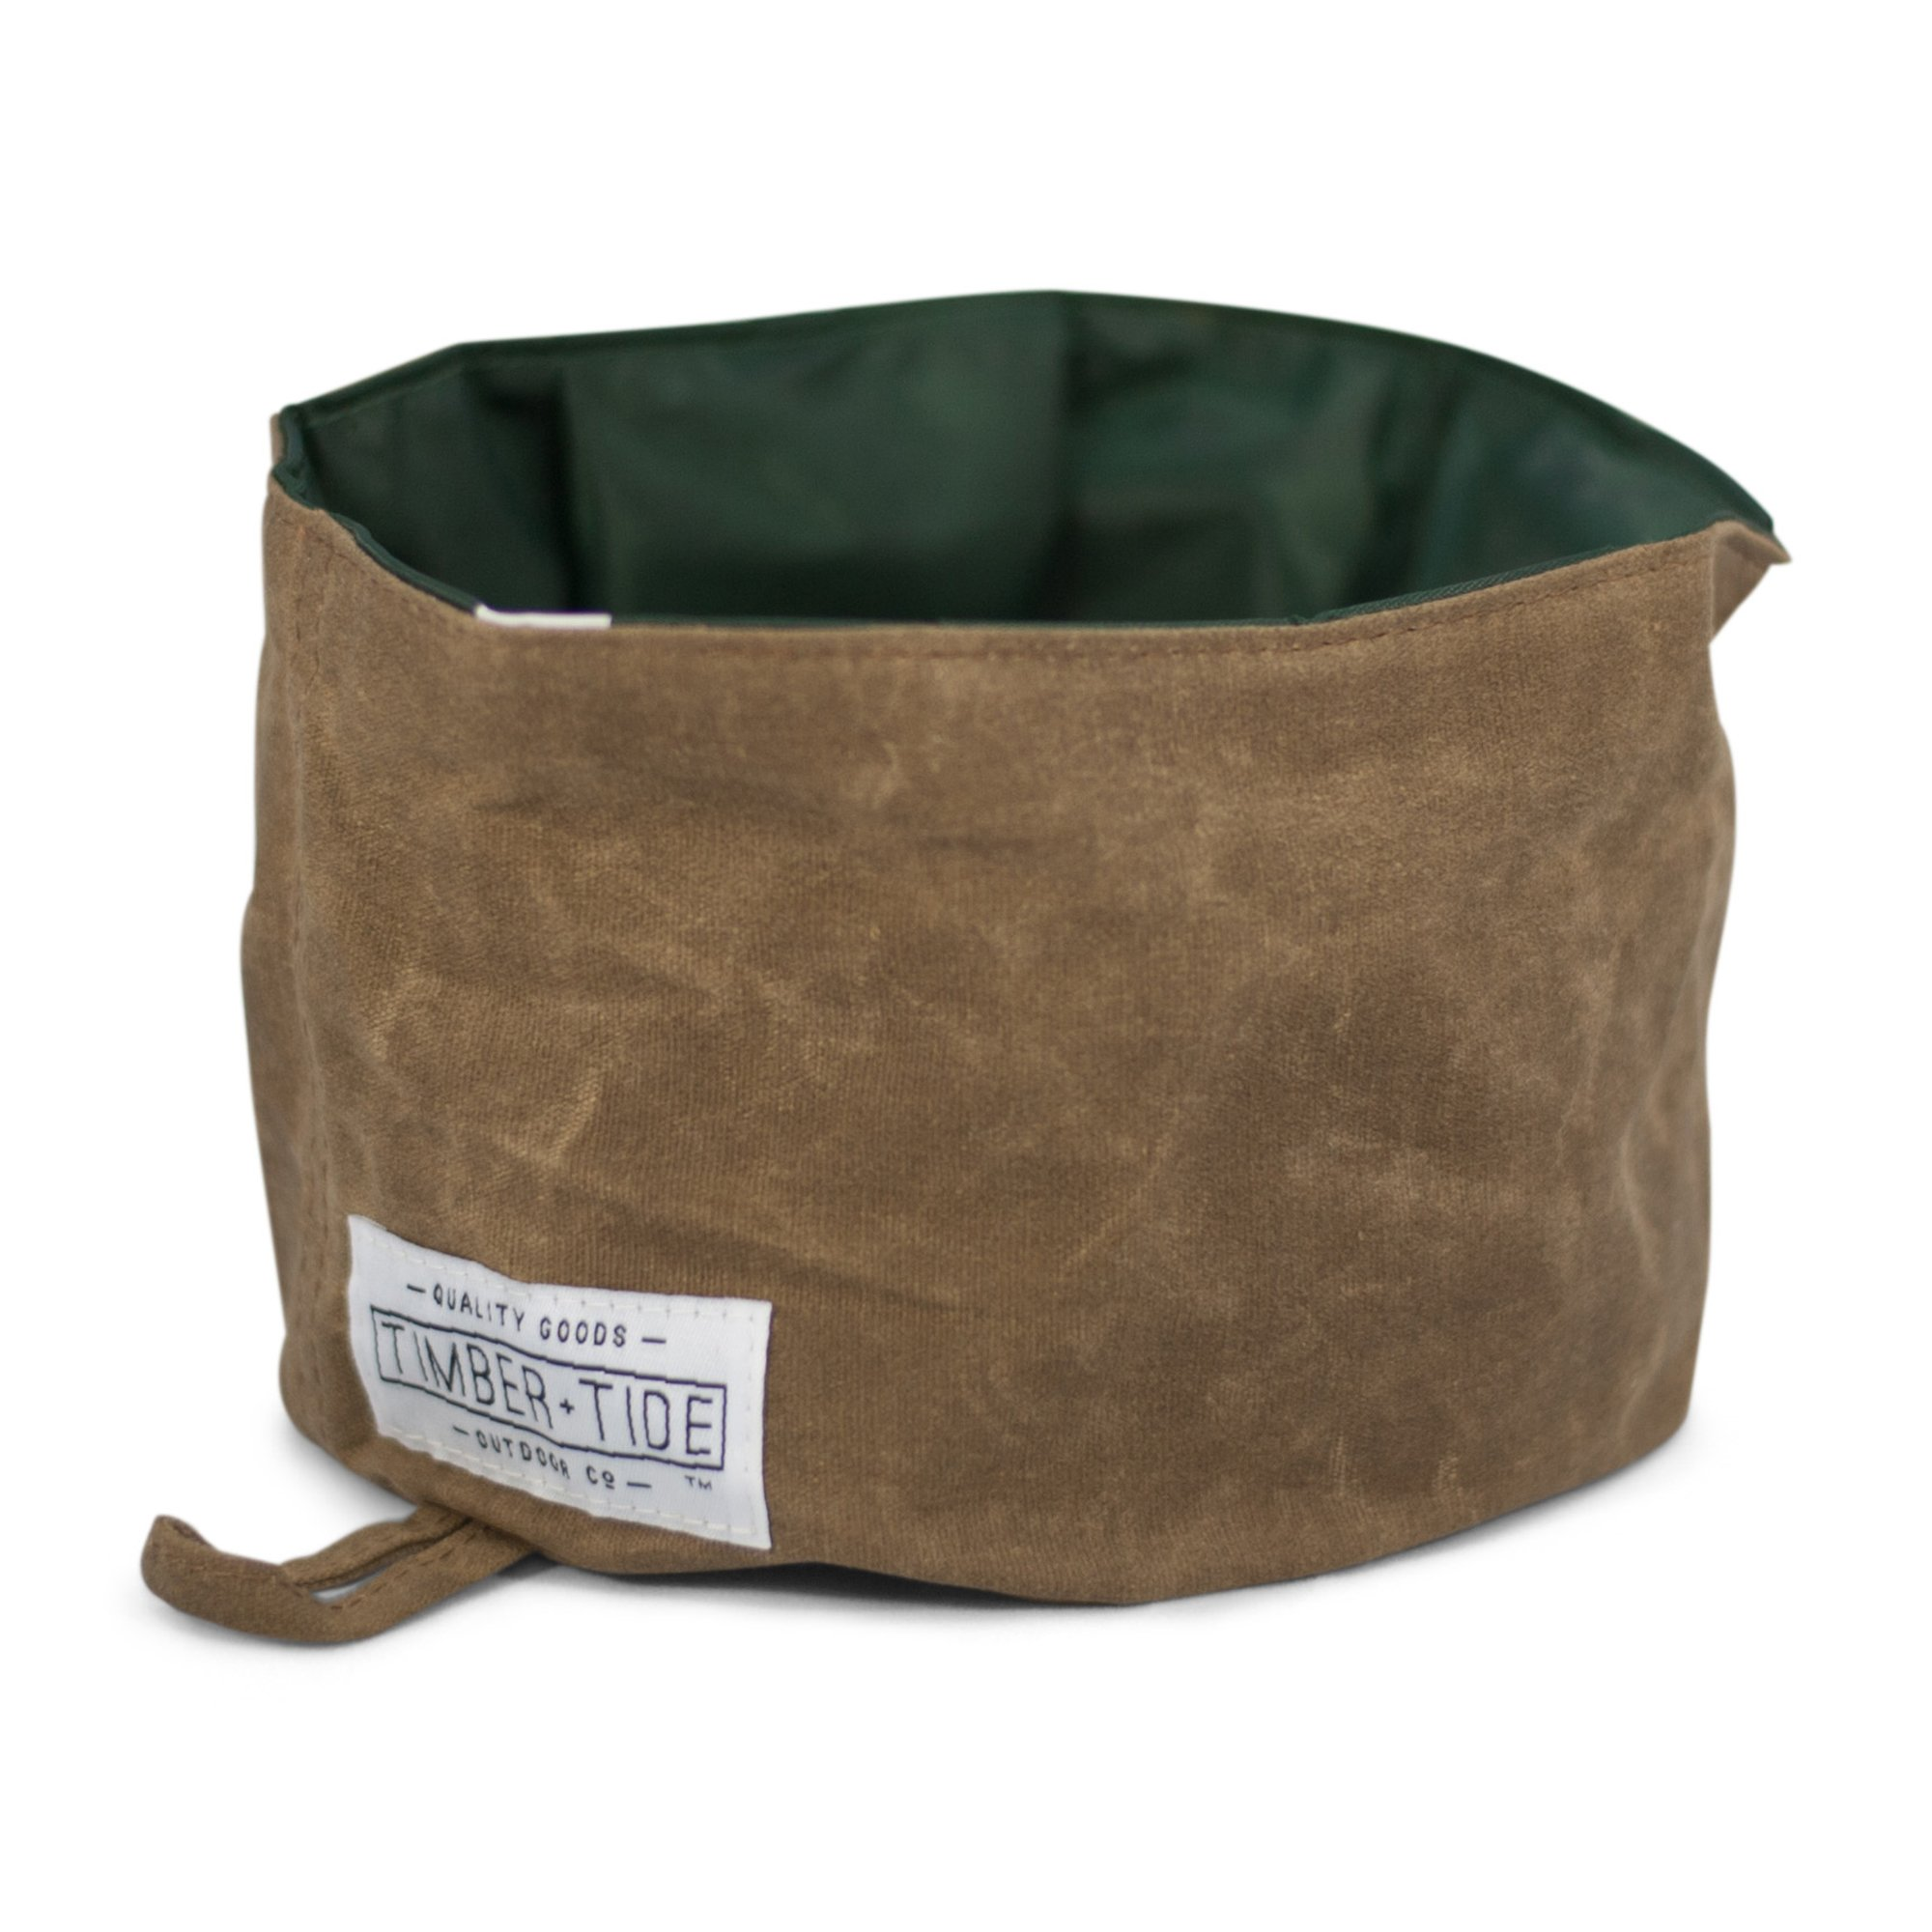 Collapsible Dog Bowl - Rugged Heavy Duty Canvas Travel Bowl with Waterproof Interior for Water or Dry Food - Foldable and Packable